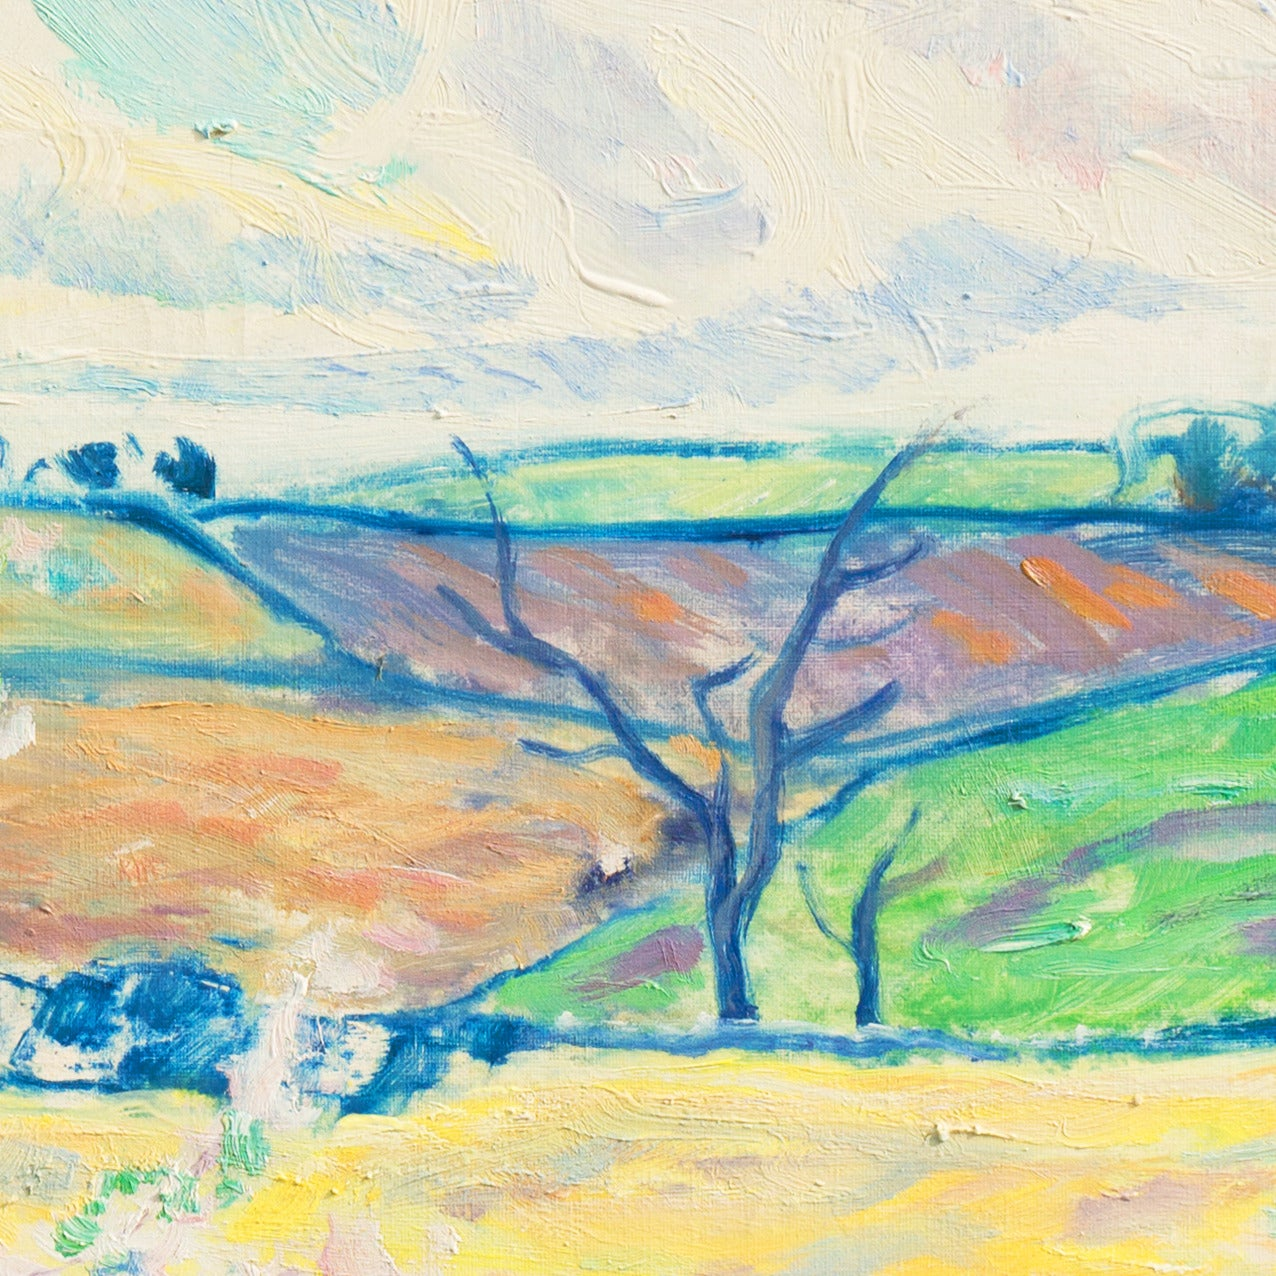 """Signed lower left, """"Ejnar R. Kragh"""" and painted circa 1945.   A substantial and period oil landscape showing a fruit-tree in blossom in the foreground and verdant fields receding towards rolling hills beneath sunlit turquoise and lavender clouds."""